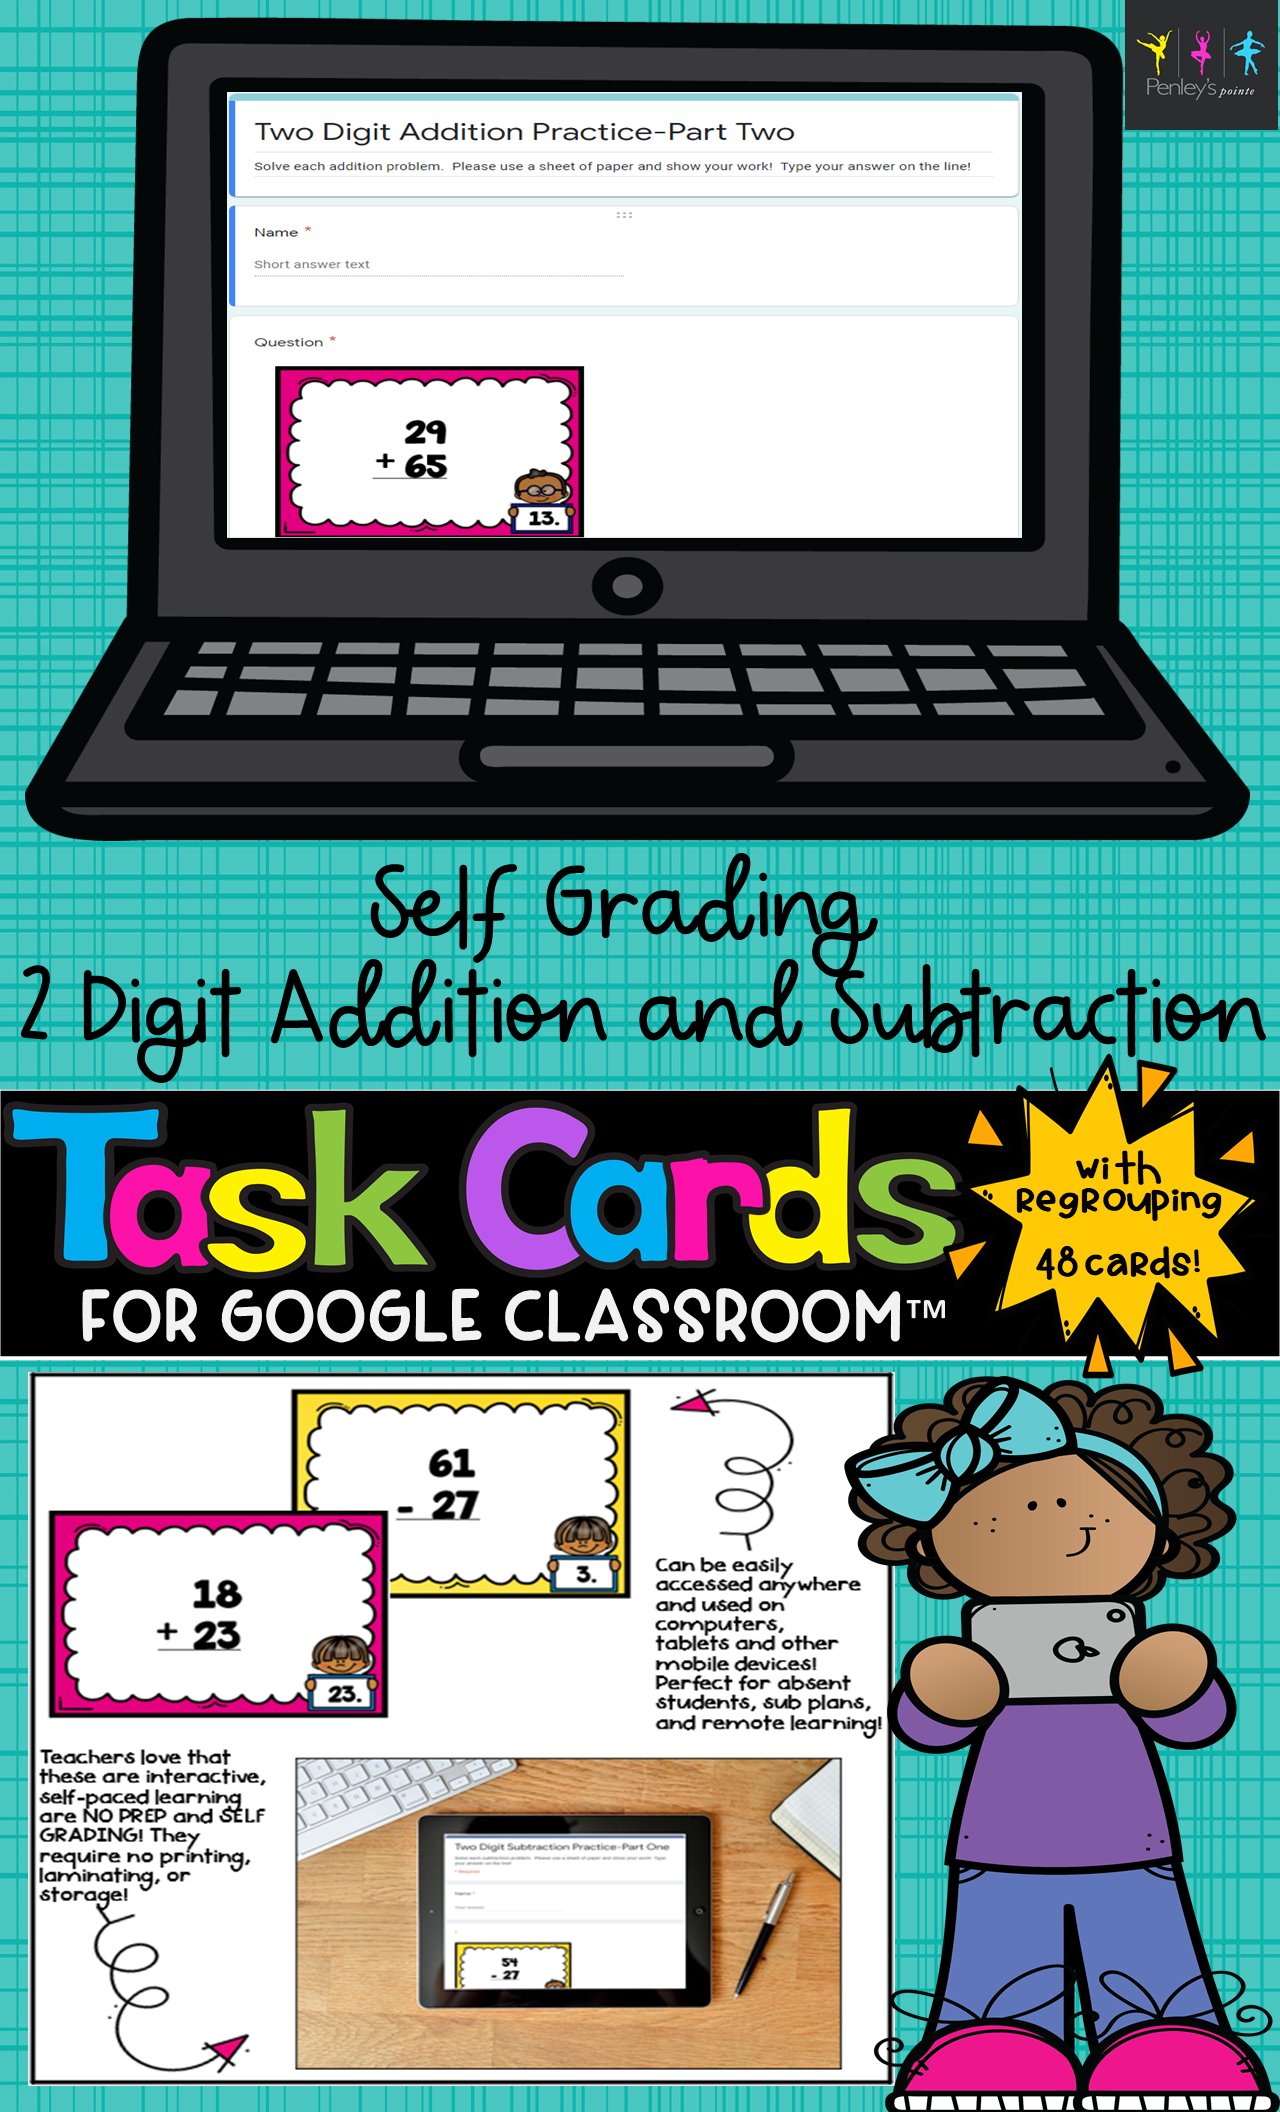 Self Grading 2 Digit Addition And Subtraction Task Cards